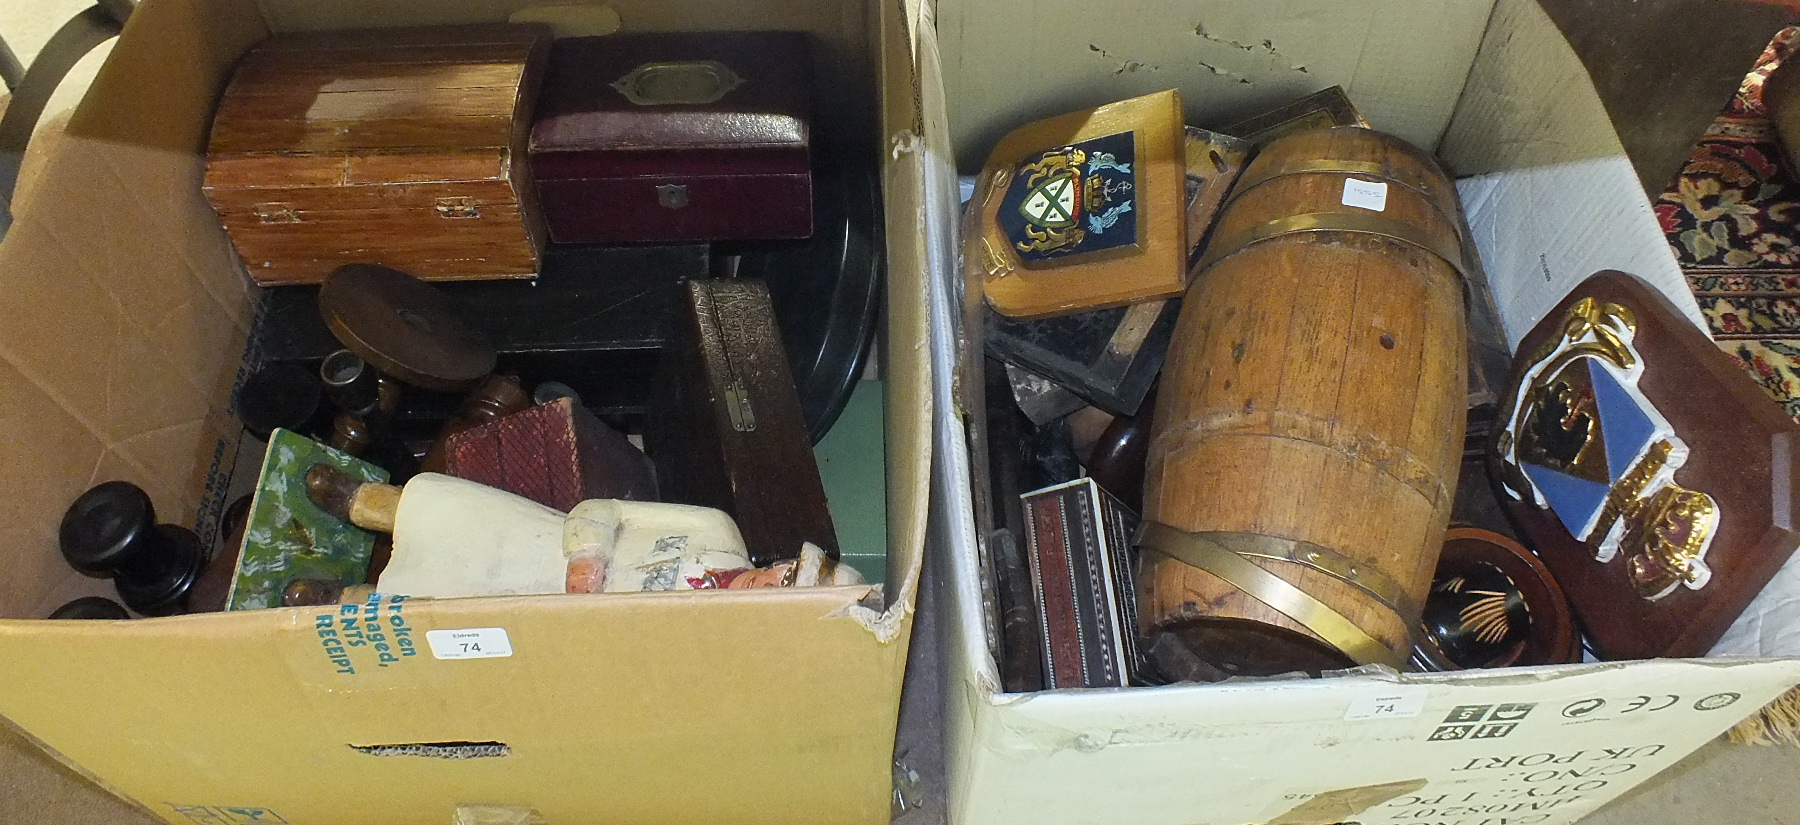 Lot 74 - A brass coopered wooden barrel, 34cm, various wooden boxes and other wooden items.